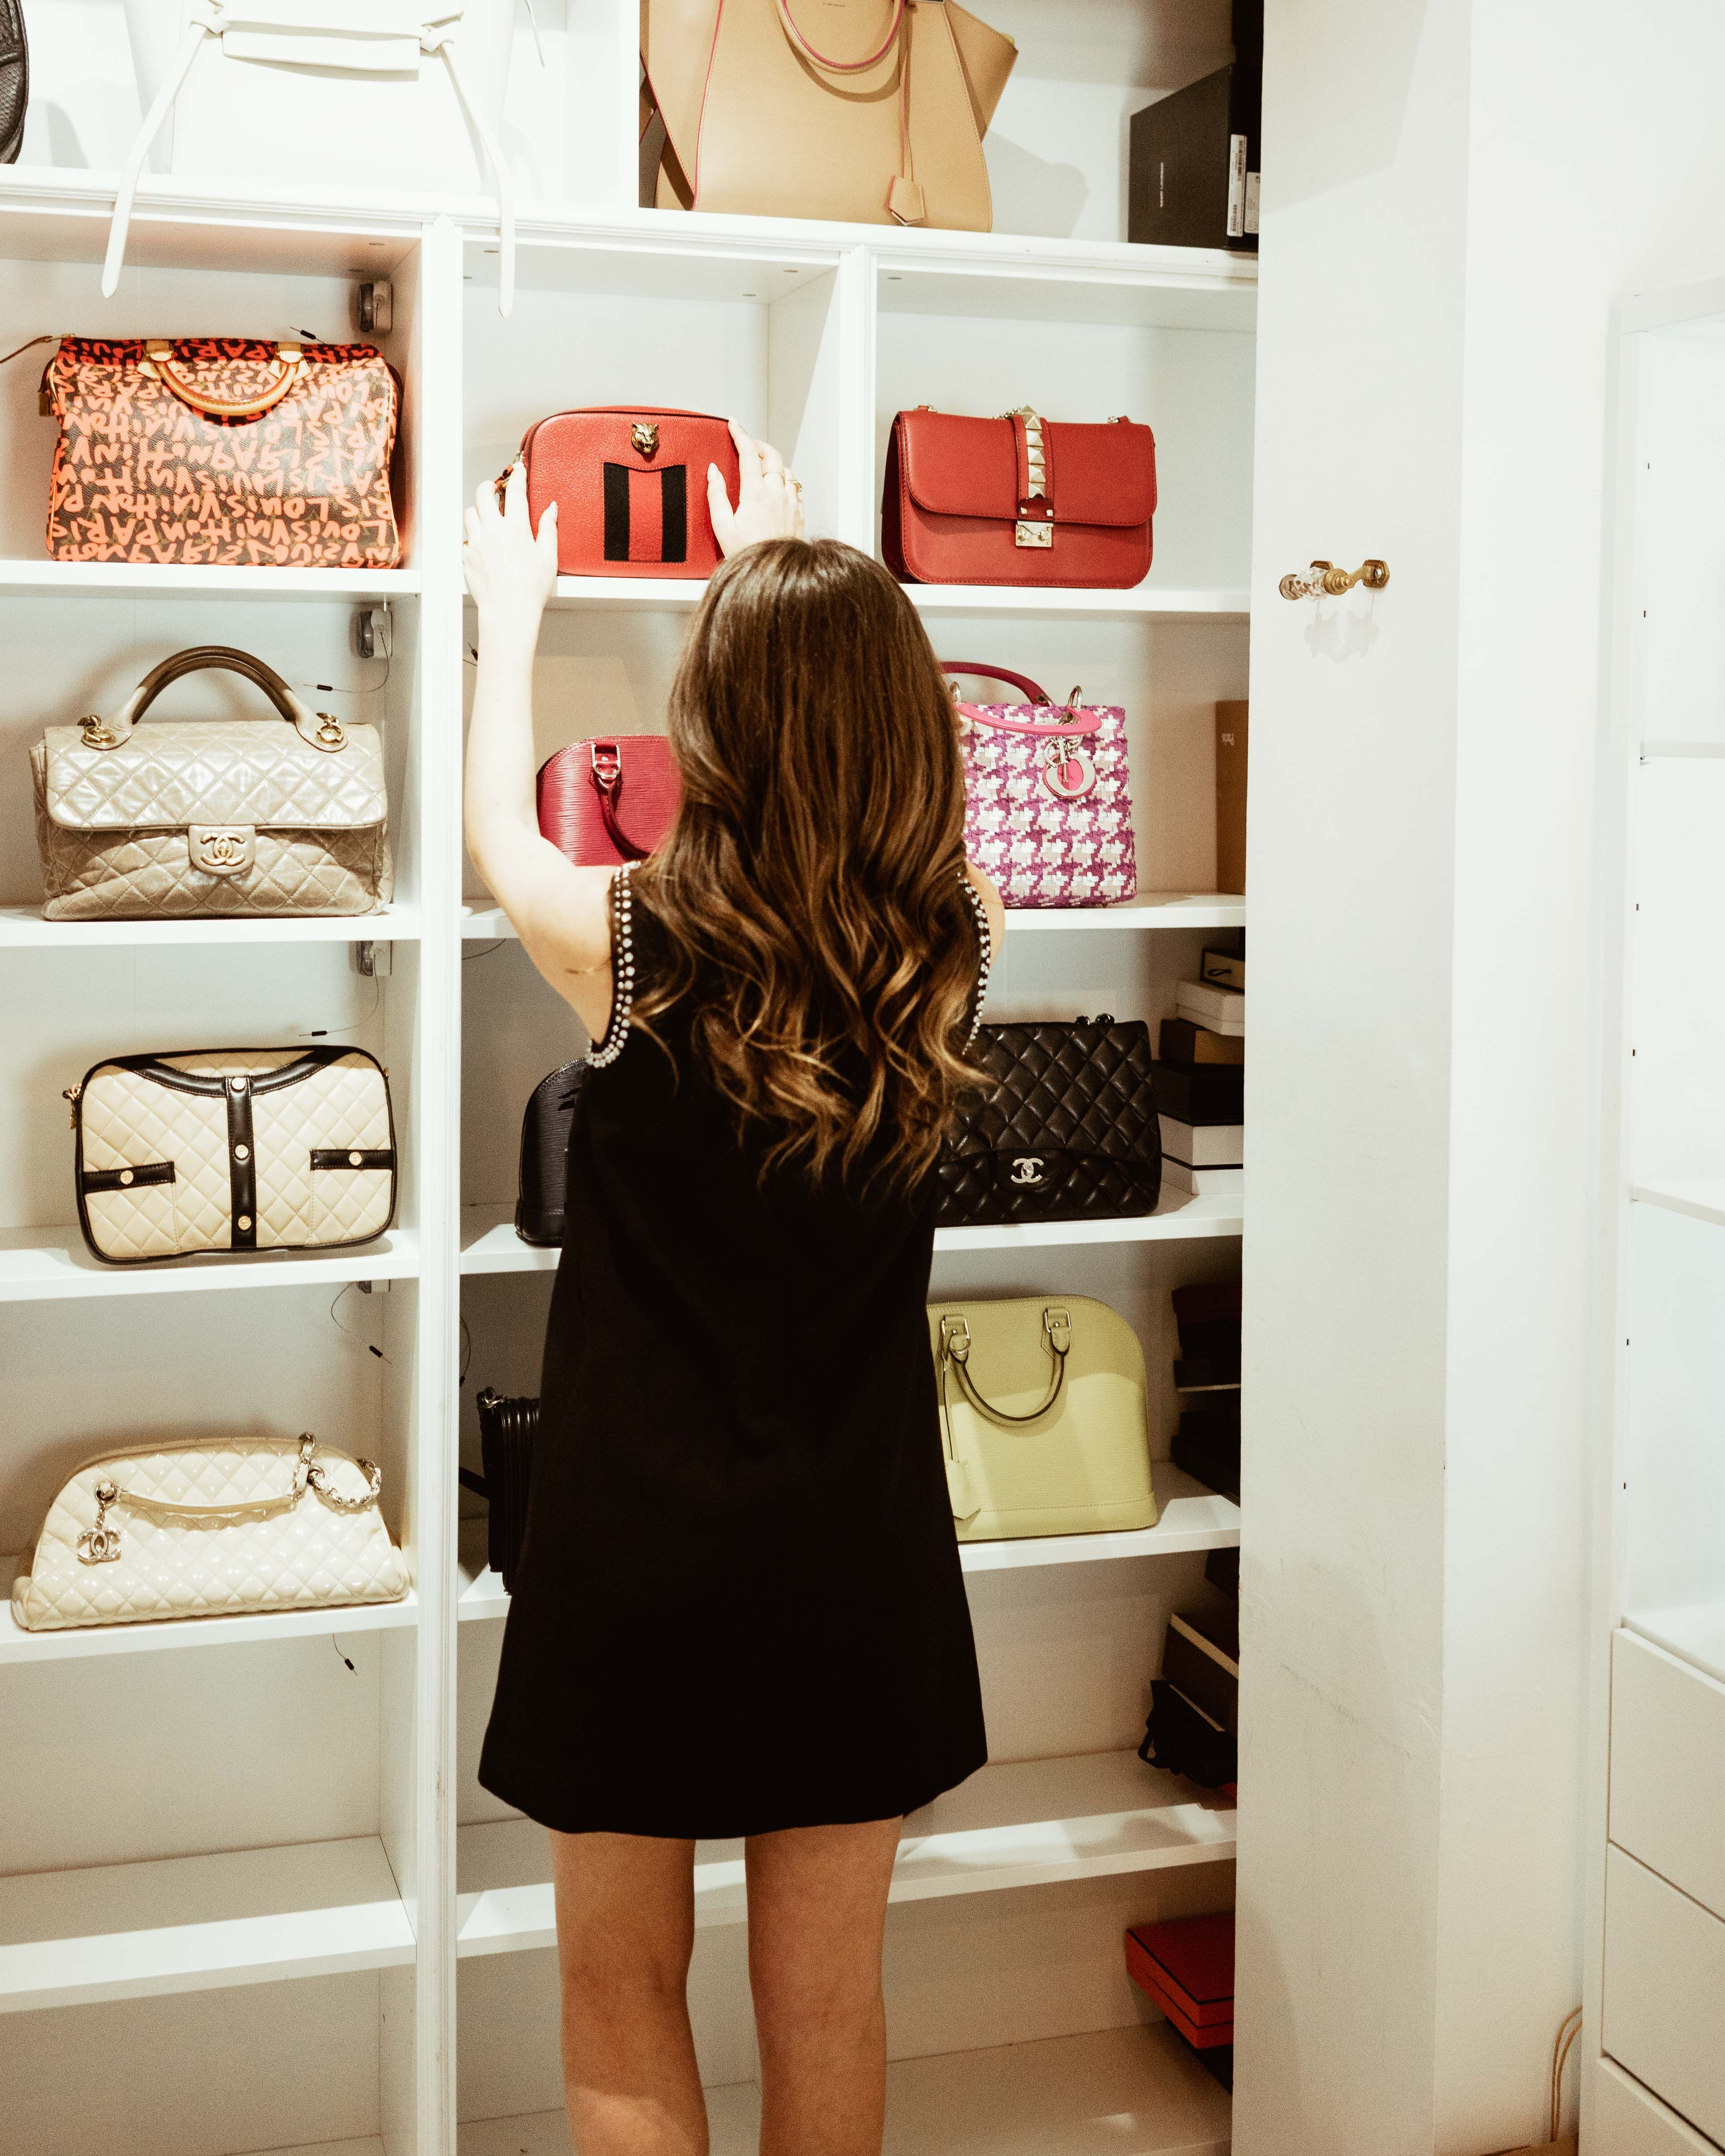 e13d1c31e15f Luxury consignment boutique opening pop-up store in South Granville ...